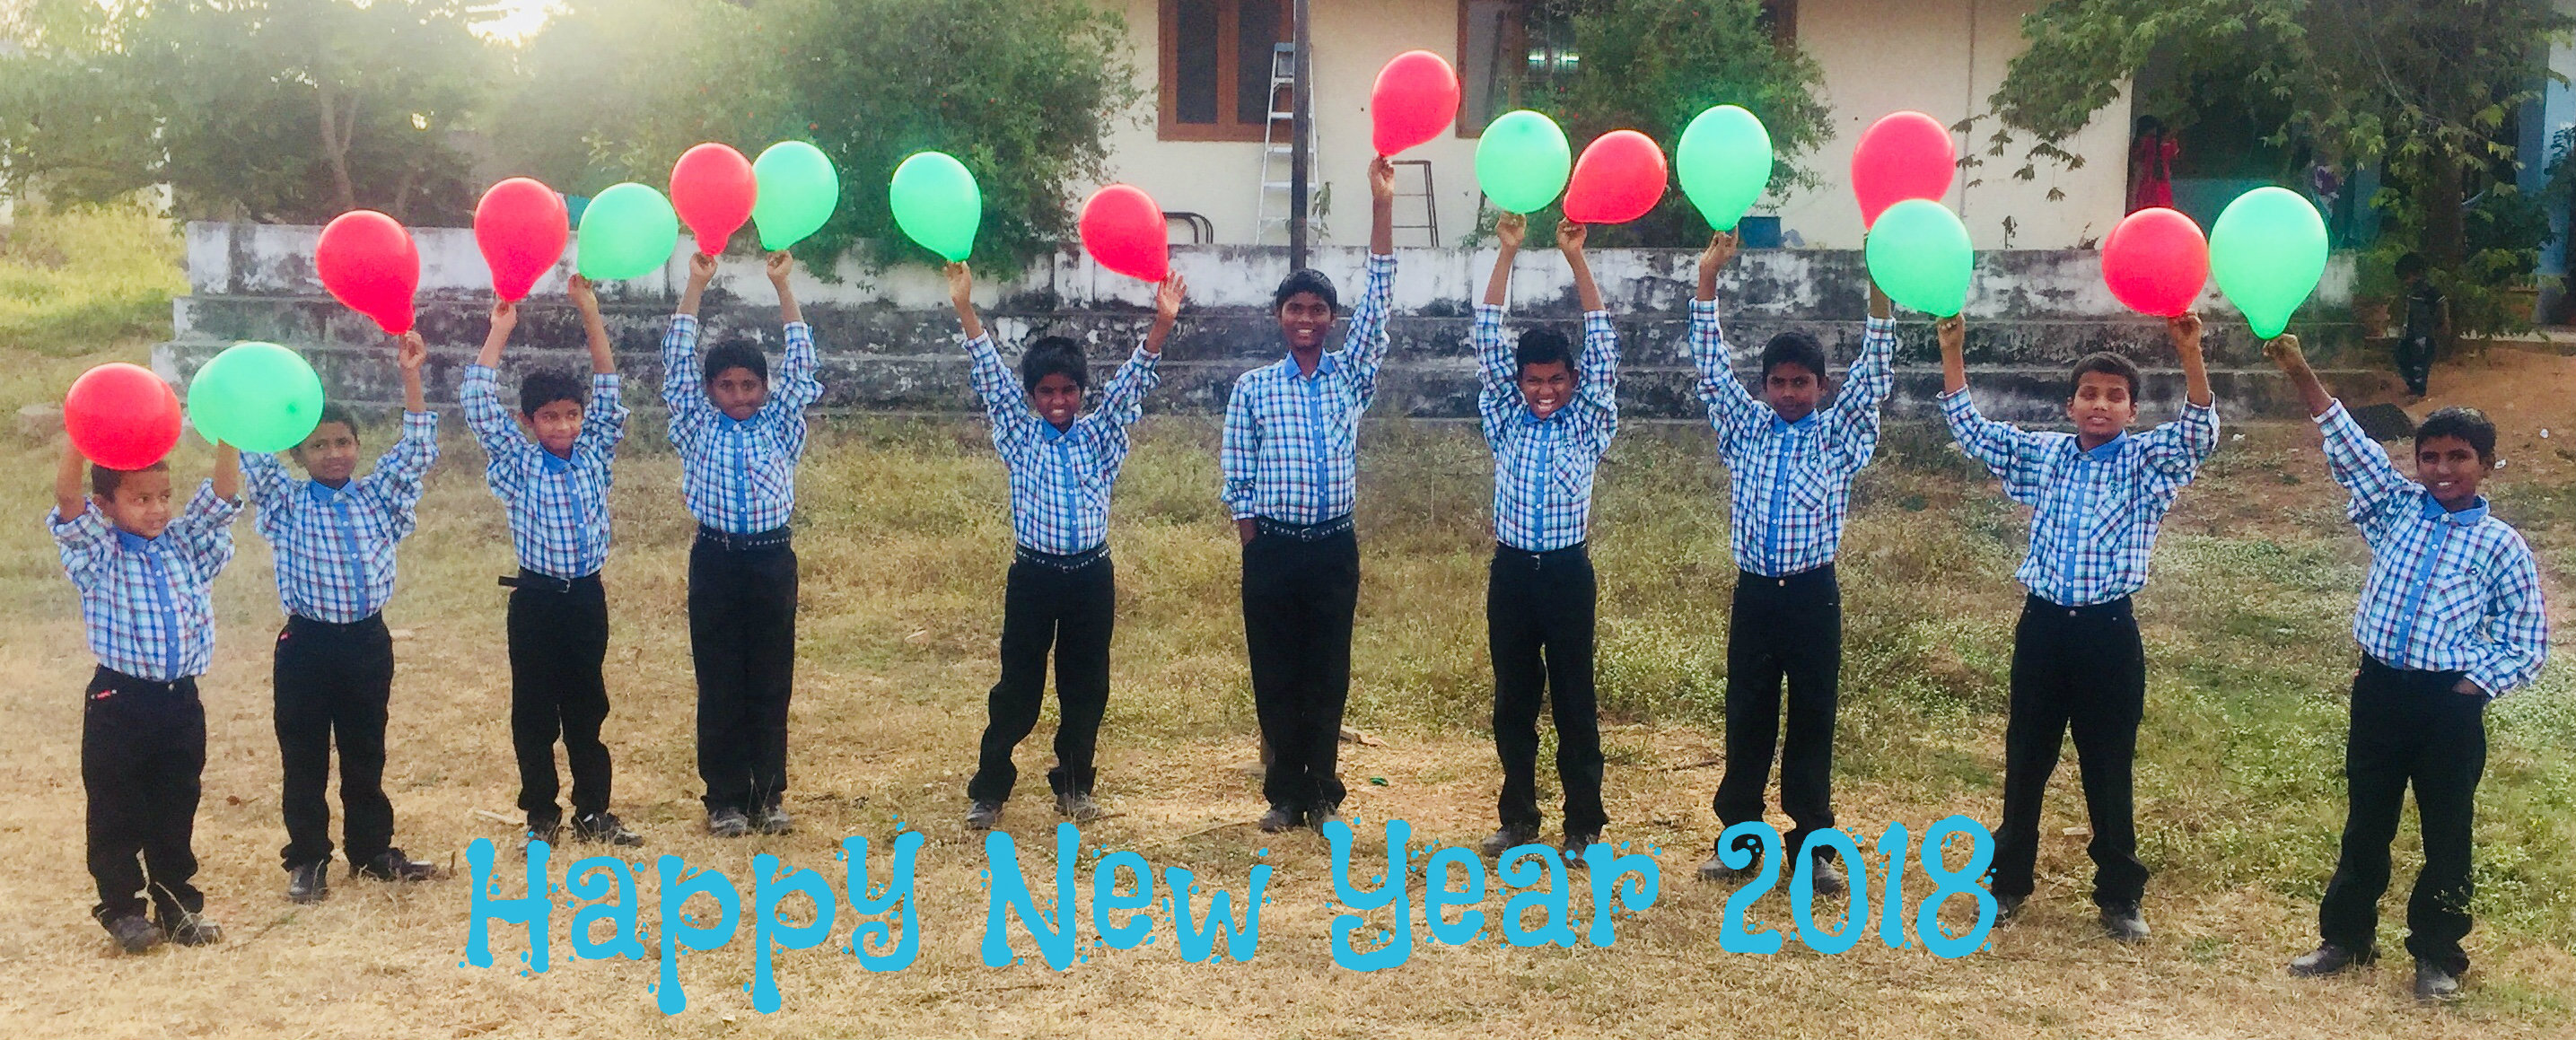 Happy-New-Year-2018-from-Abundant-Life-Care-Ministres.jpg